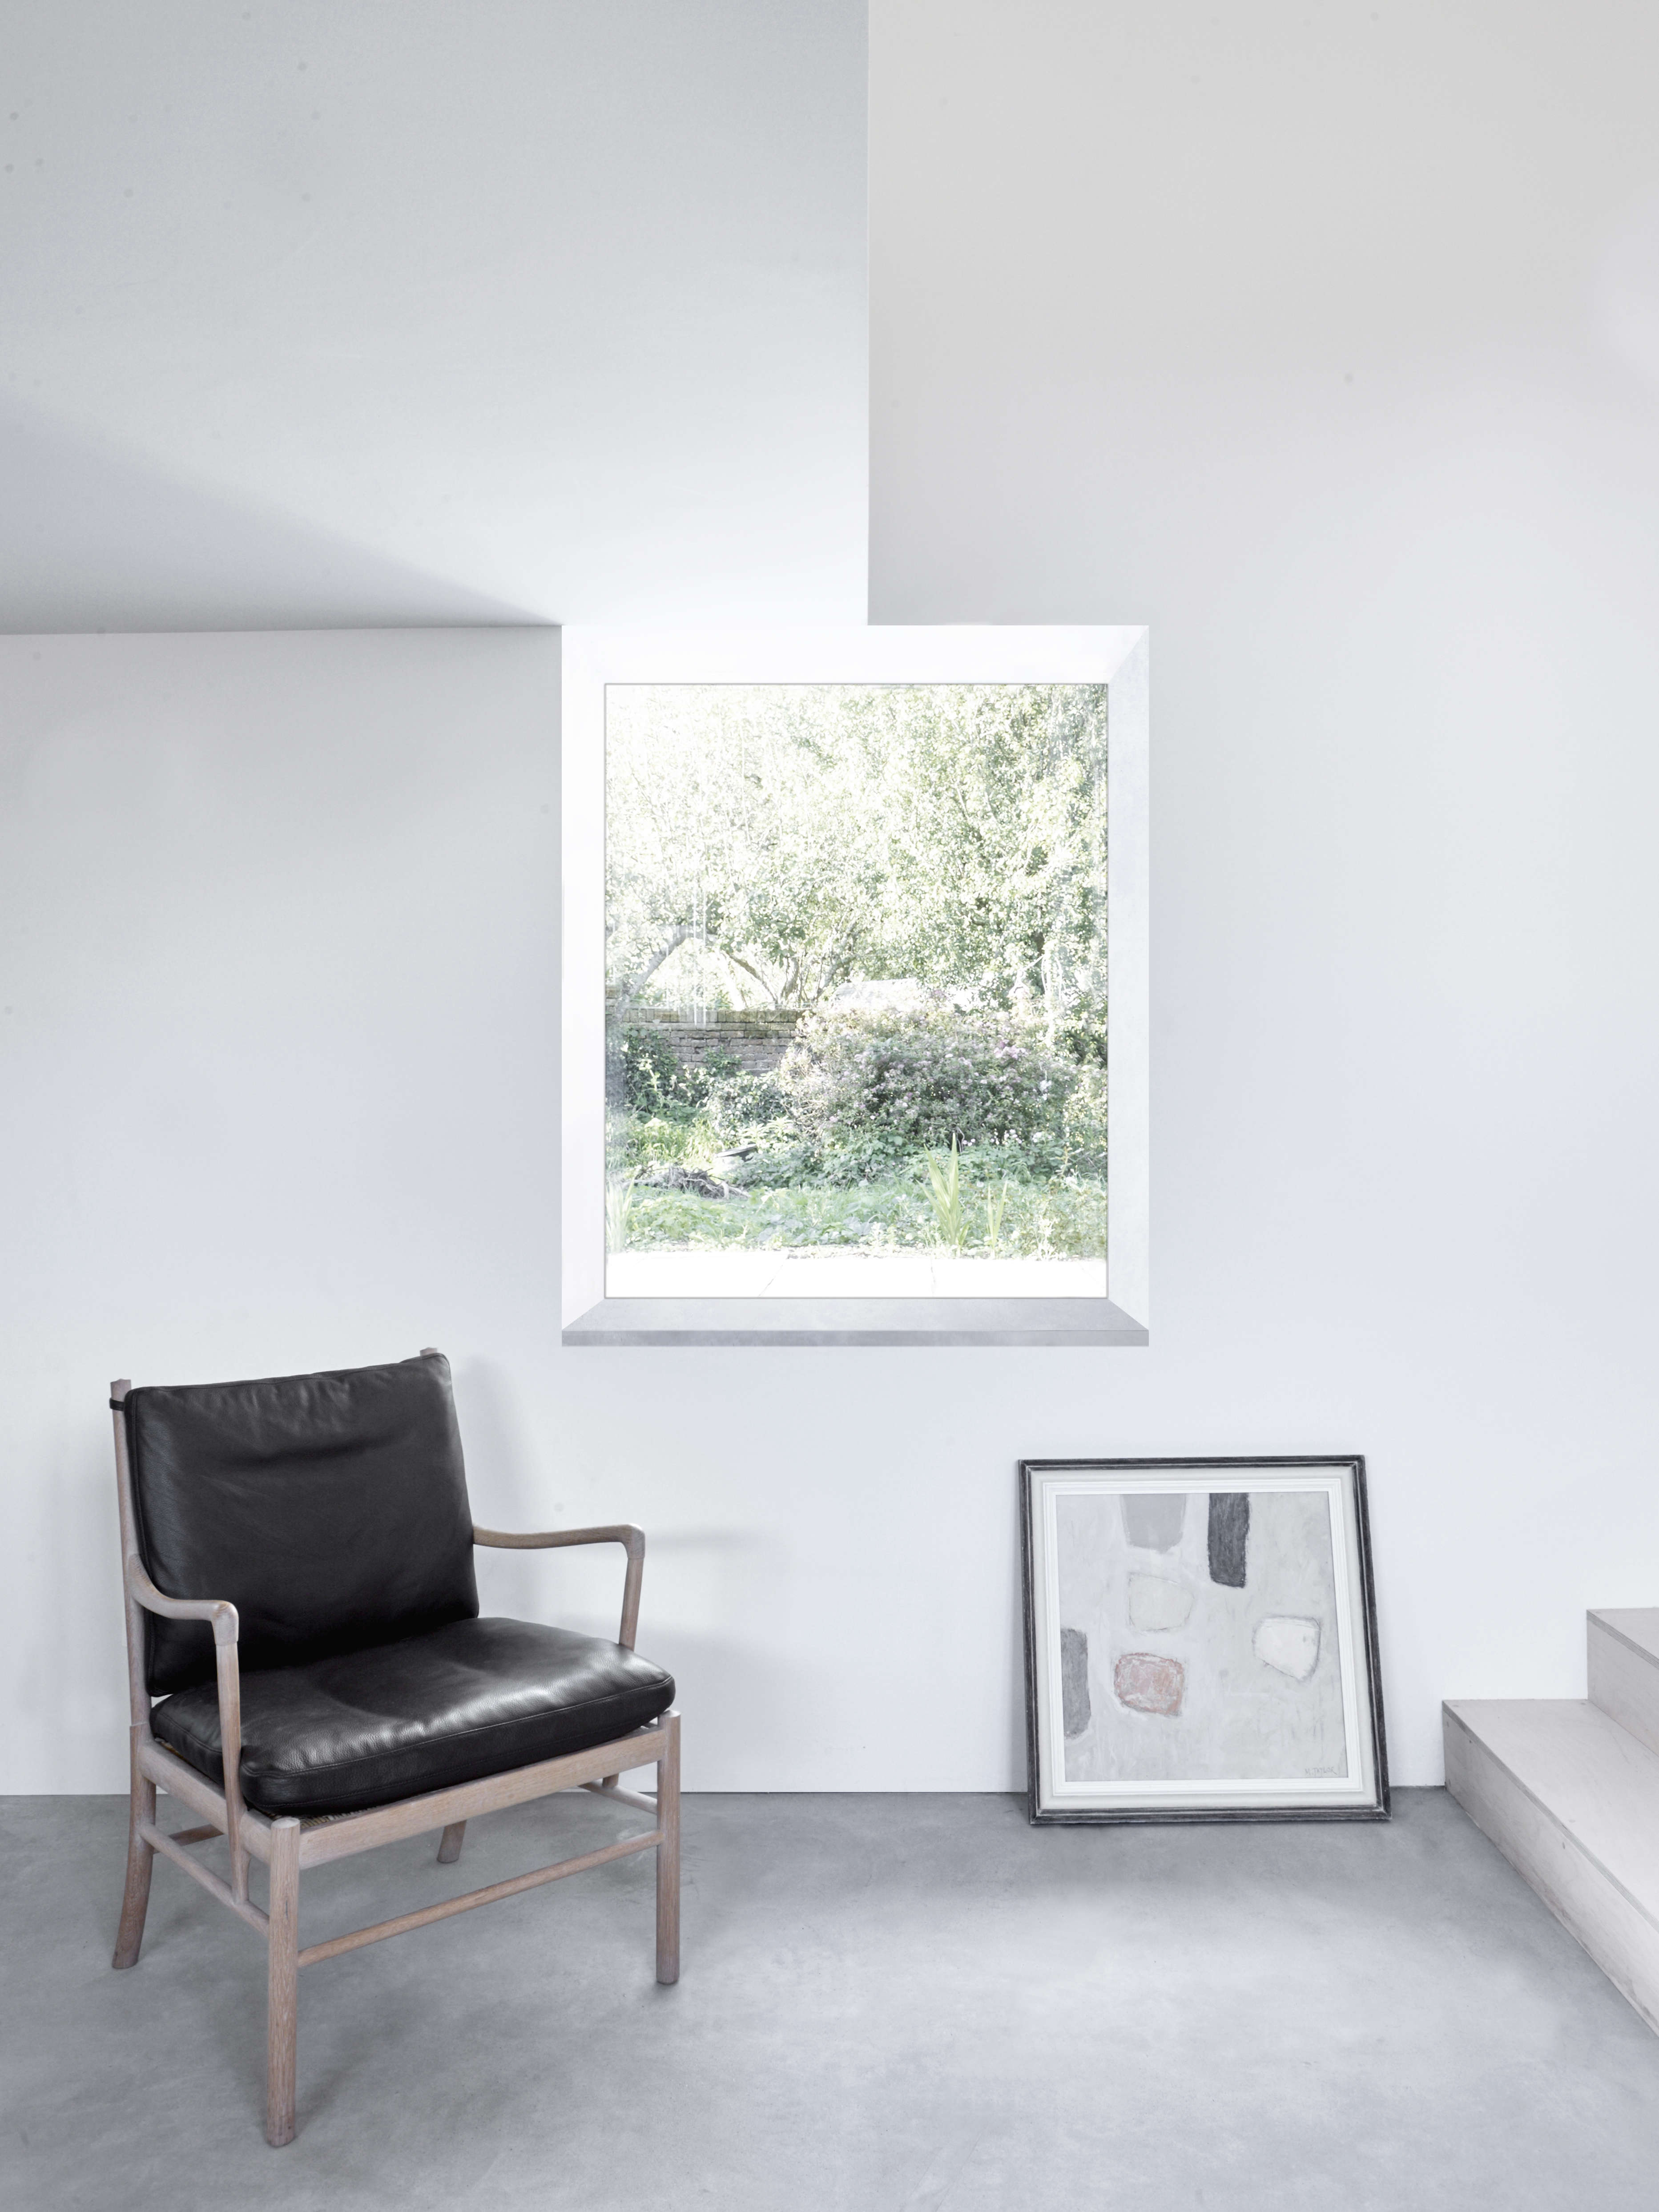 Remodeling 101: How to Choose the Perfect White Paint - Remodelista